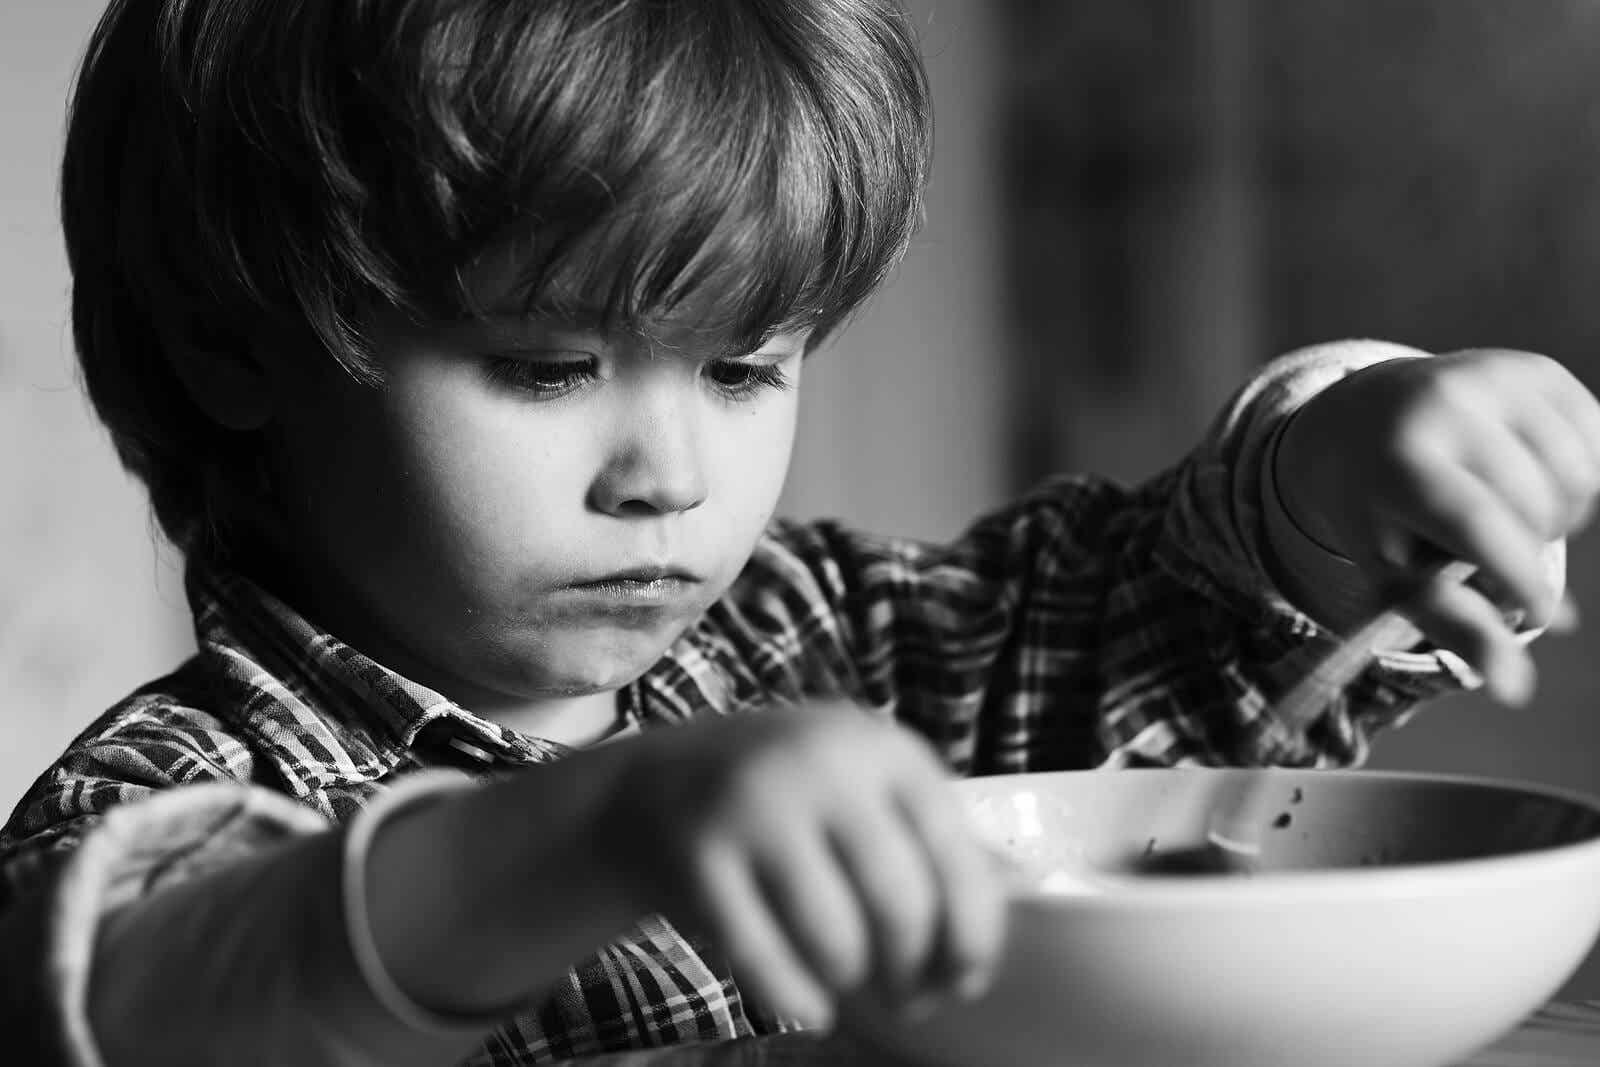 A black and white photo of a child eating a bowl of food with a serious face.